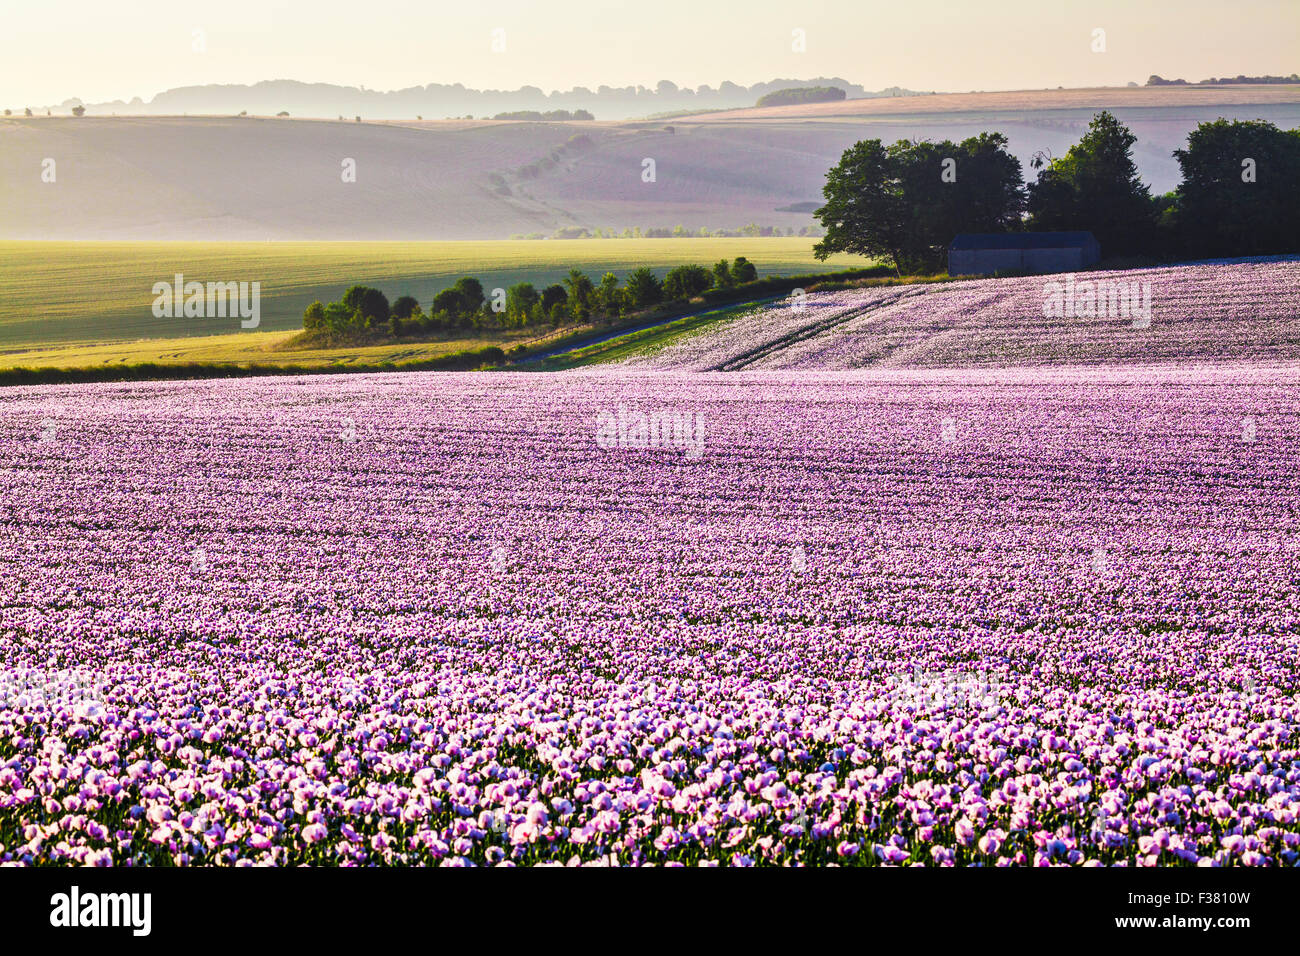 Sunrise over a field of cultivated white poppies on the Marlborough Downs in Wiltshire. Stock Photo